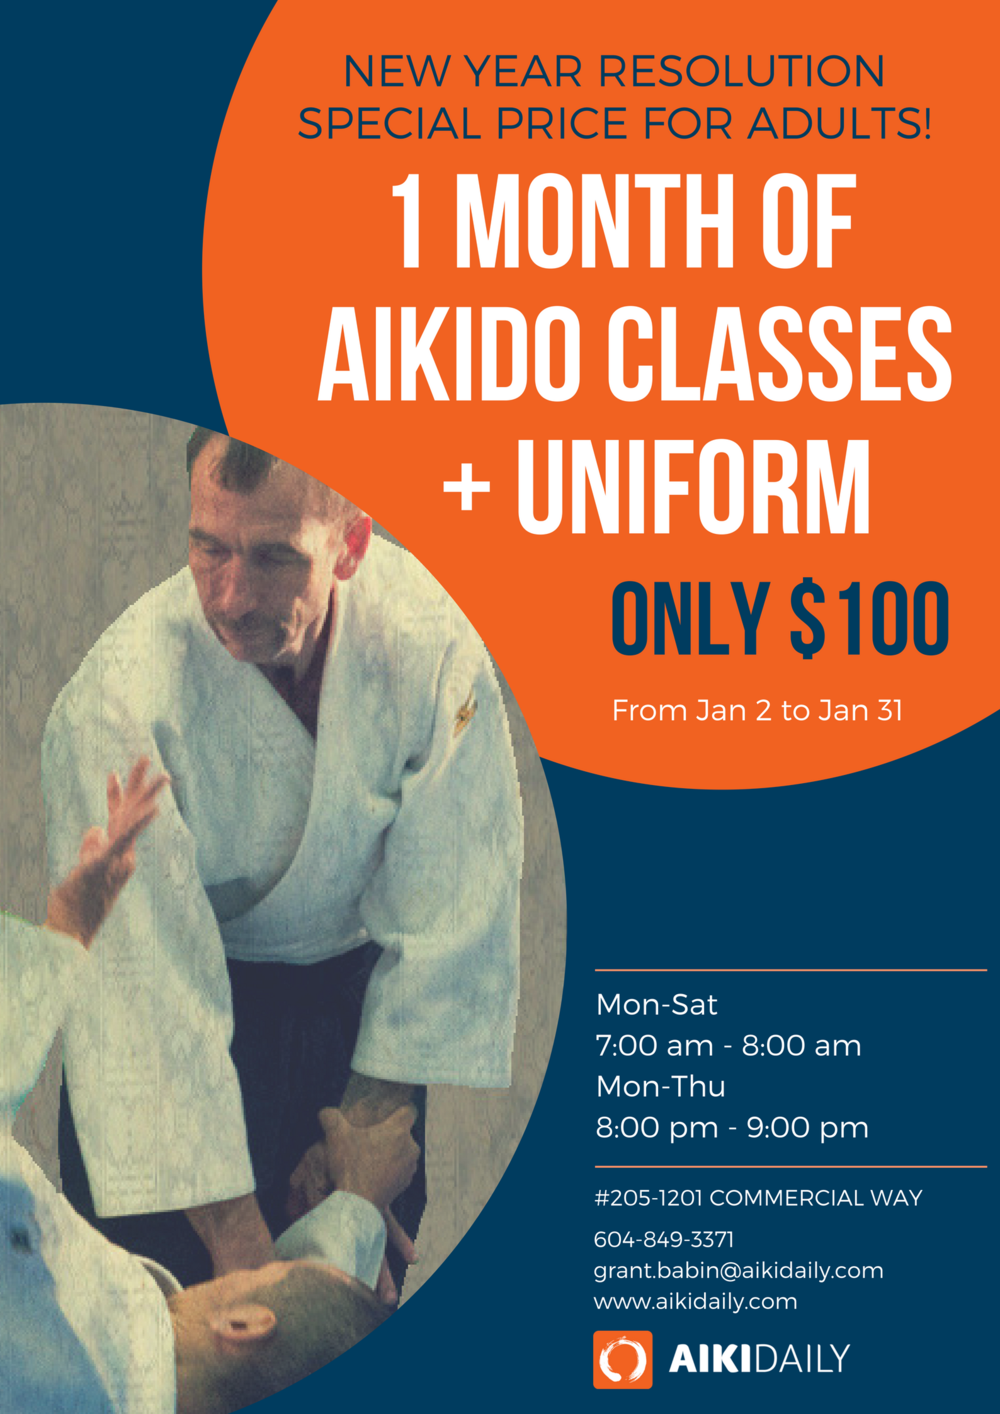 1 month free aikido + uniform.png